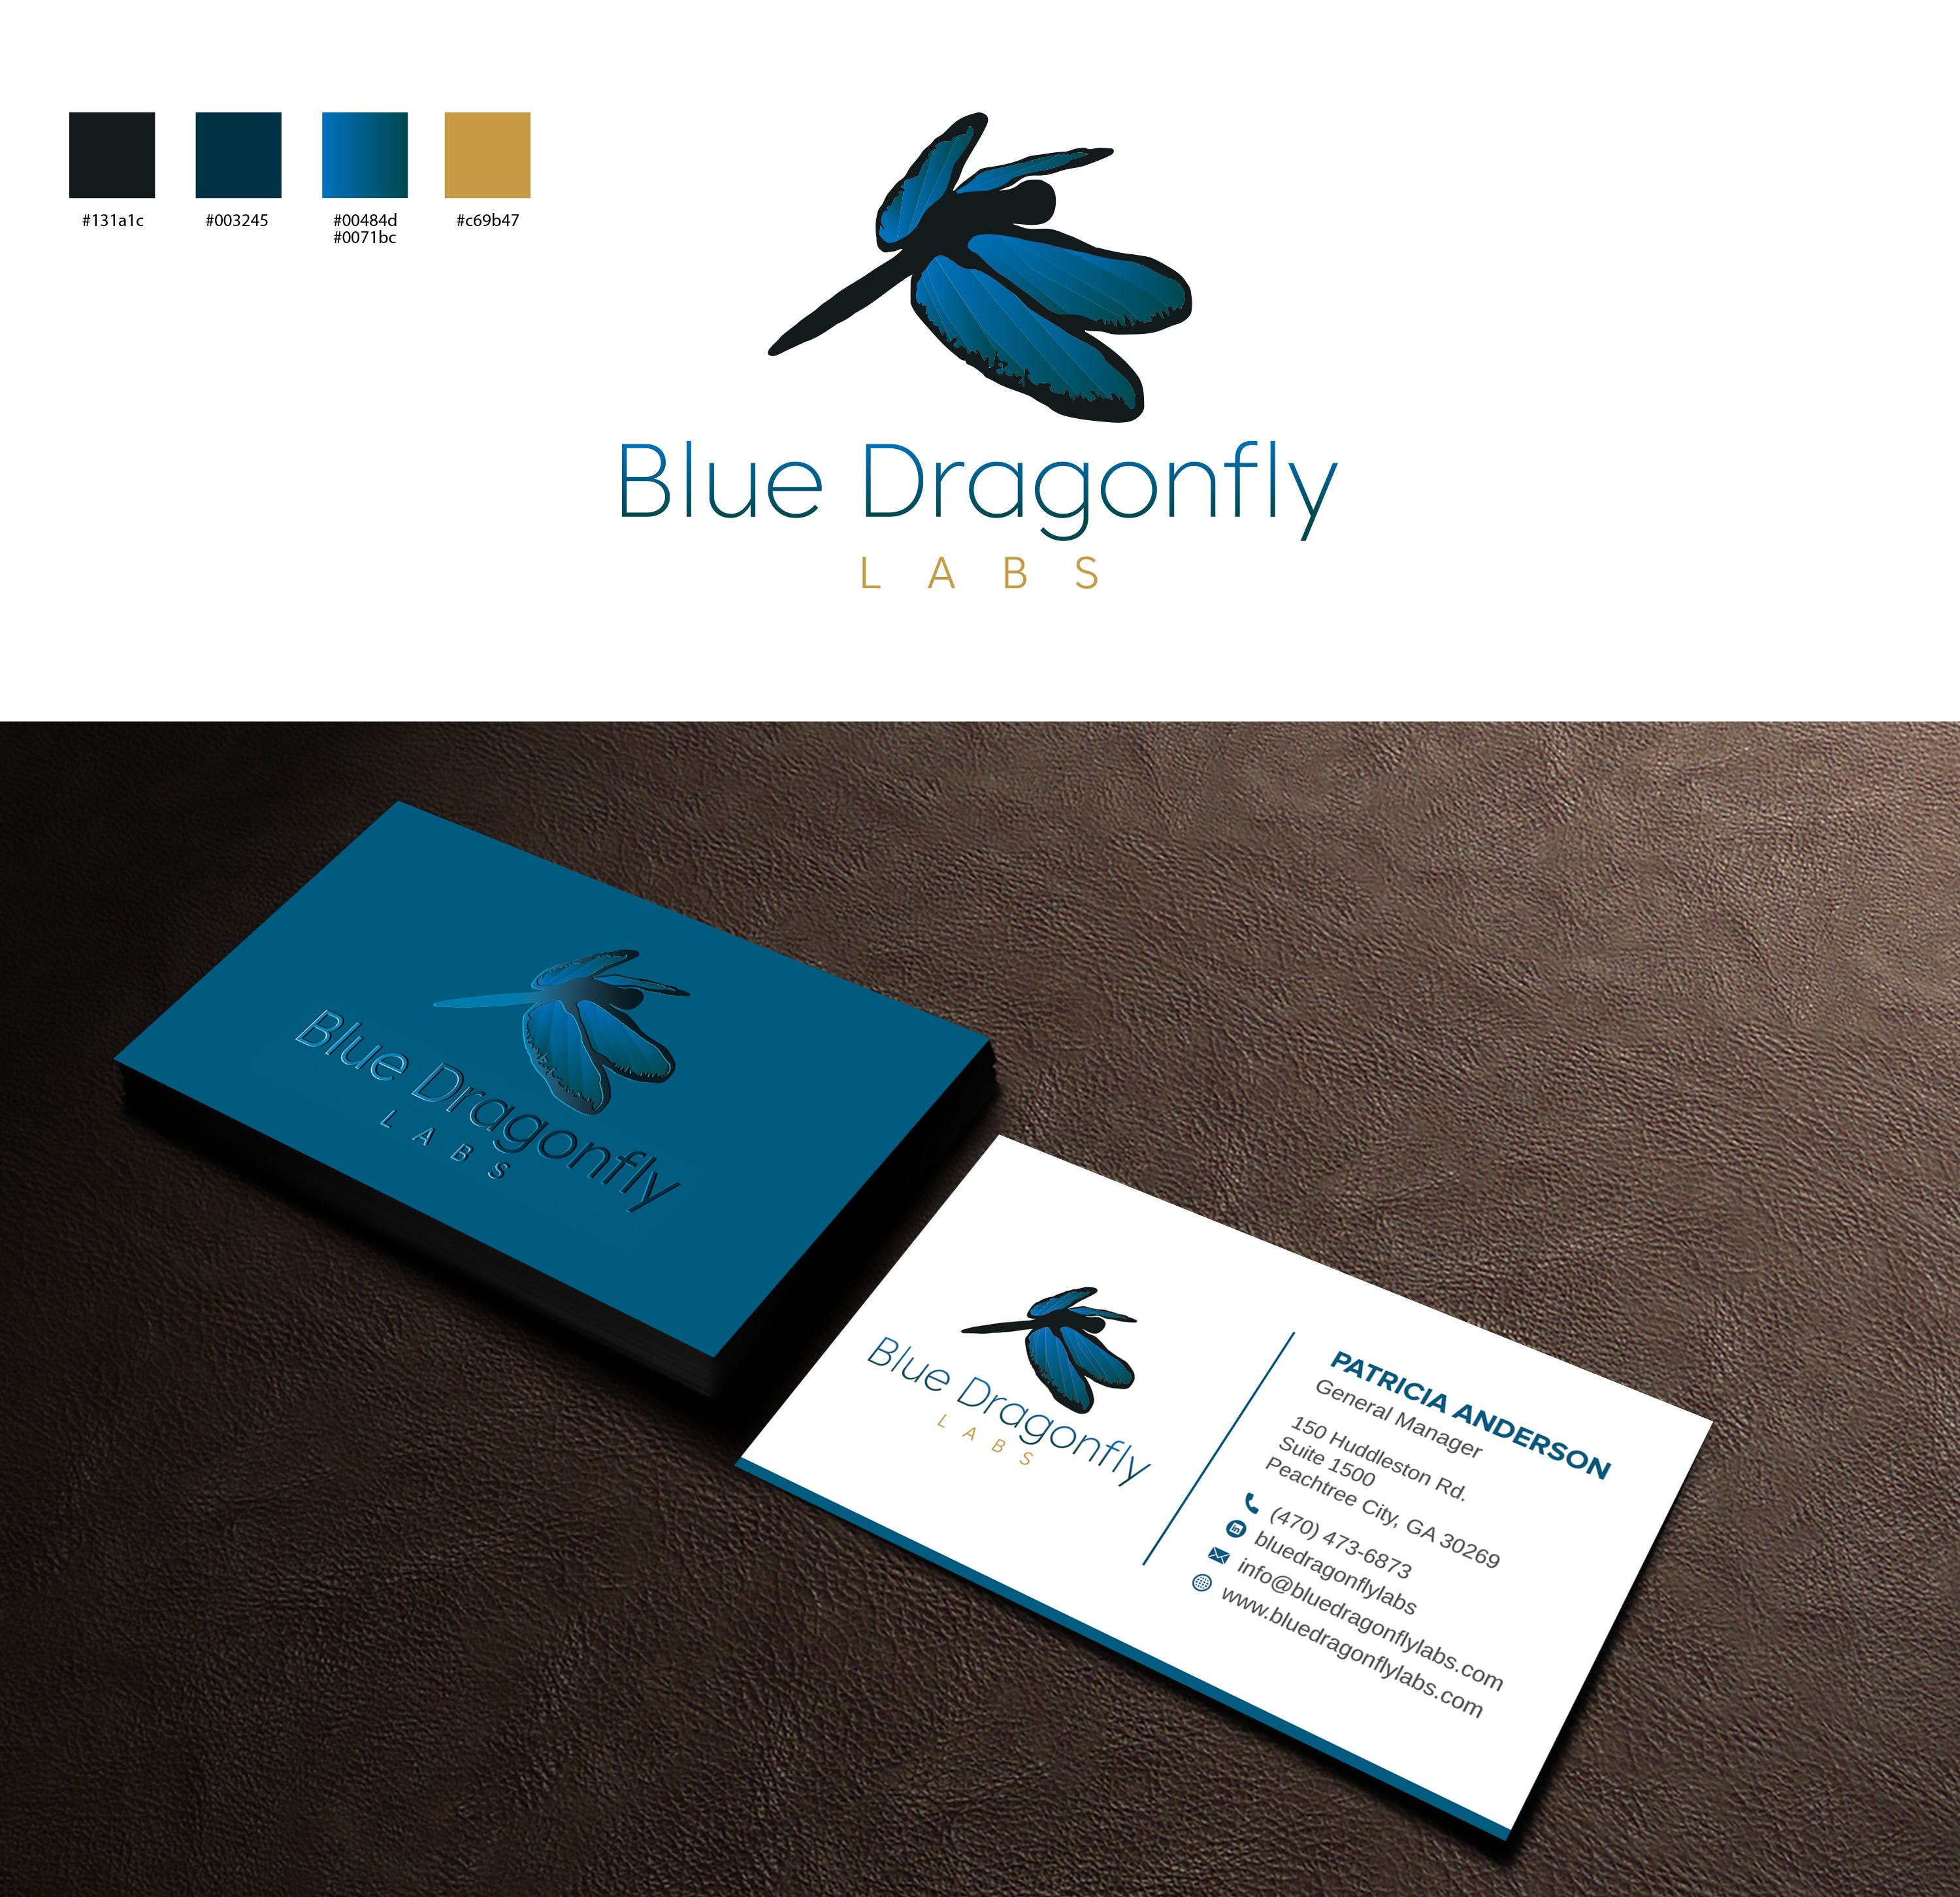 Blue Dragonfly Labs